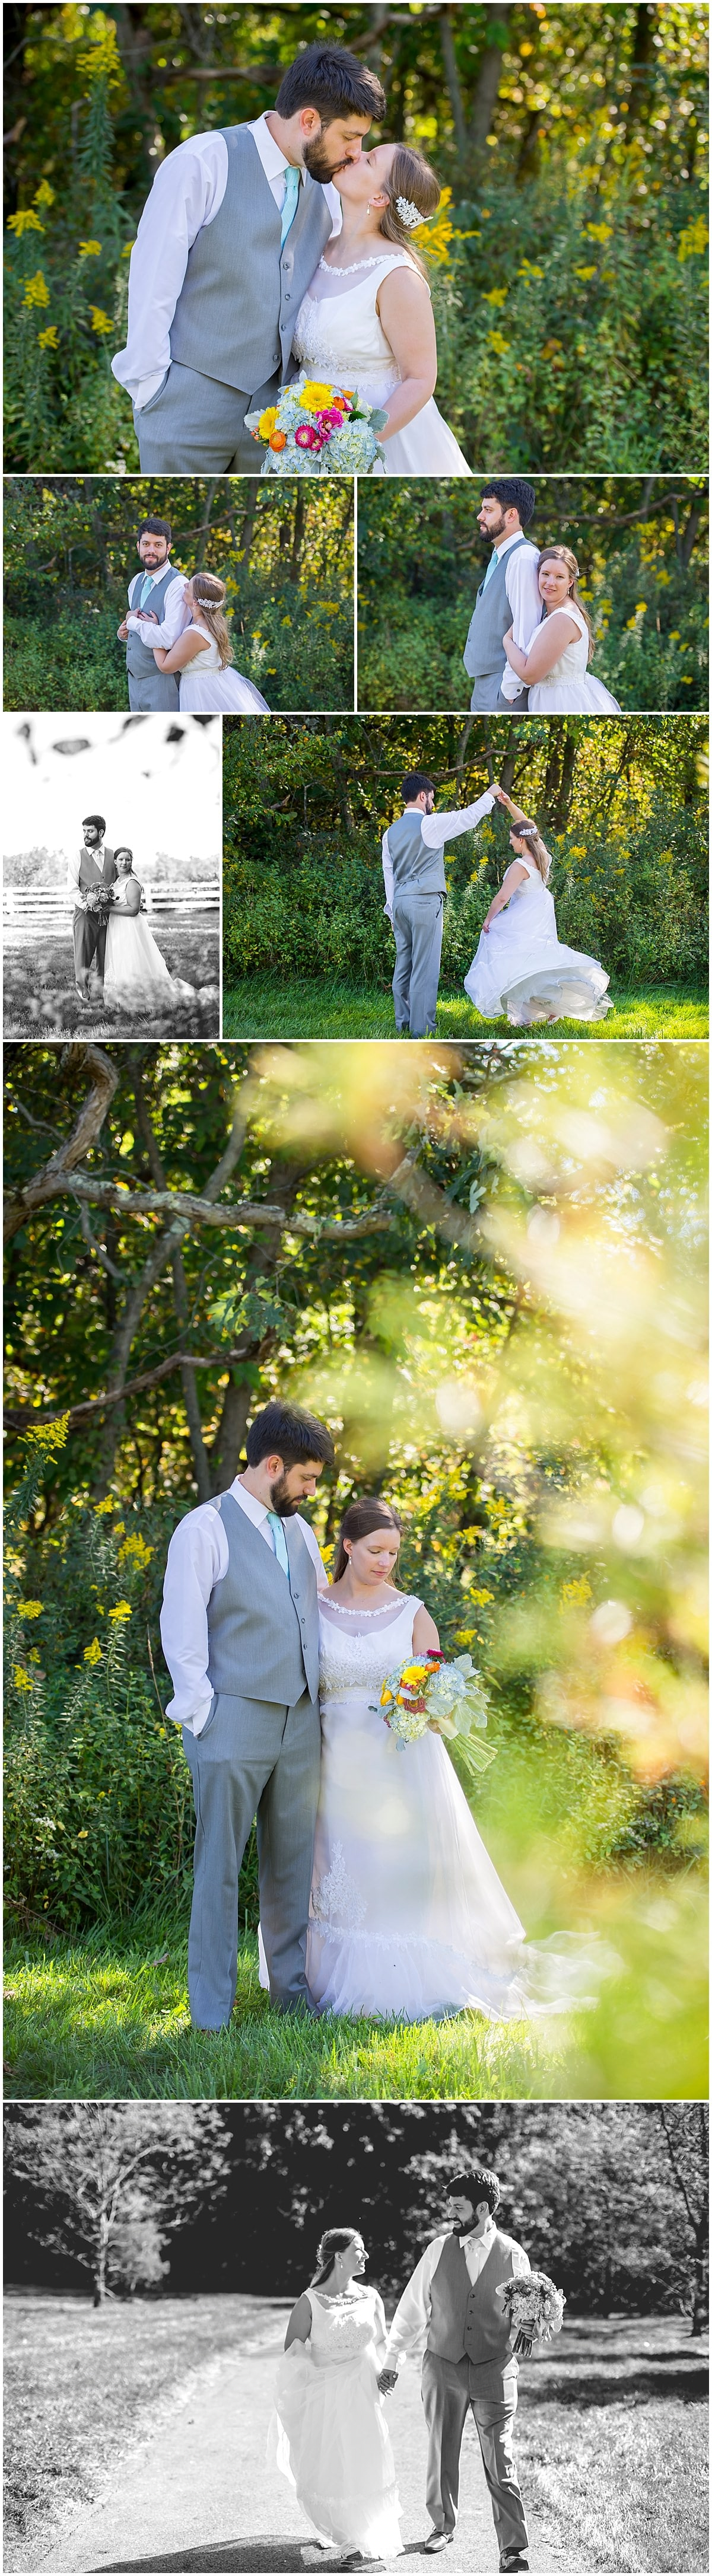 Jorgensen Farms Weddings